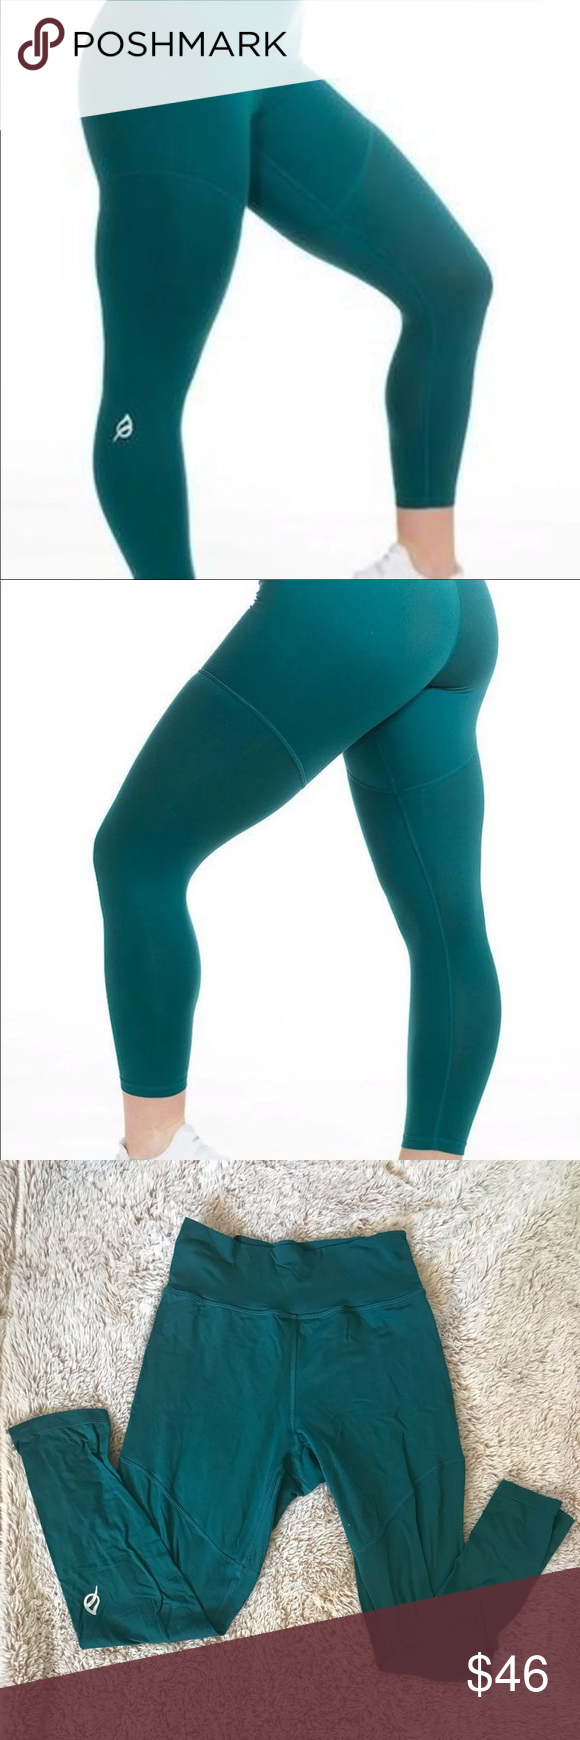 P Tula Lindsay Double Take Leggings Sold In 2020 Leggings Are Not Pants Pants For Women Leggings Here is a full p'tula try on with all the item launching on december 9th for the 1st anniversary launch (minus the brandi. pinterest